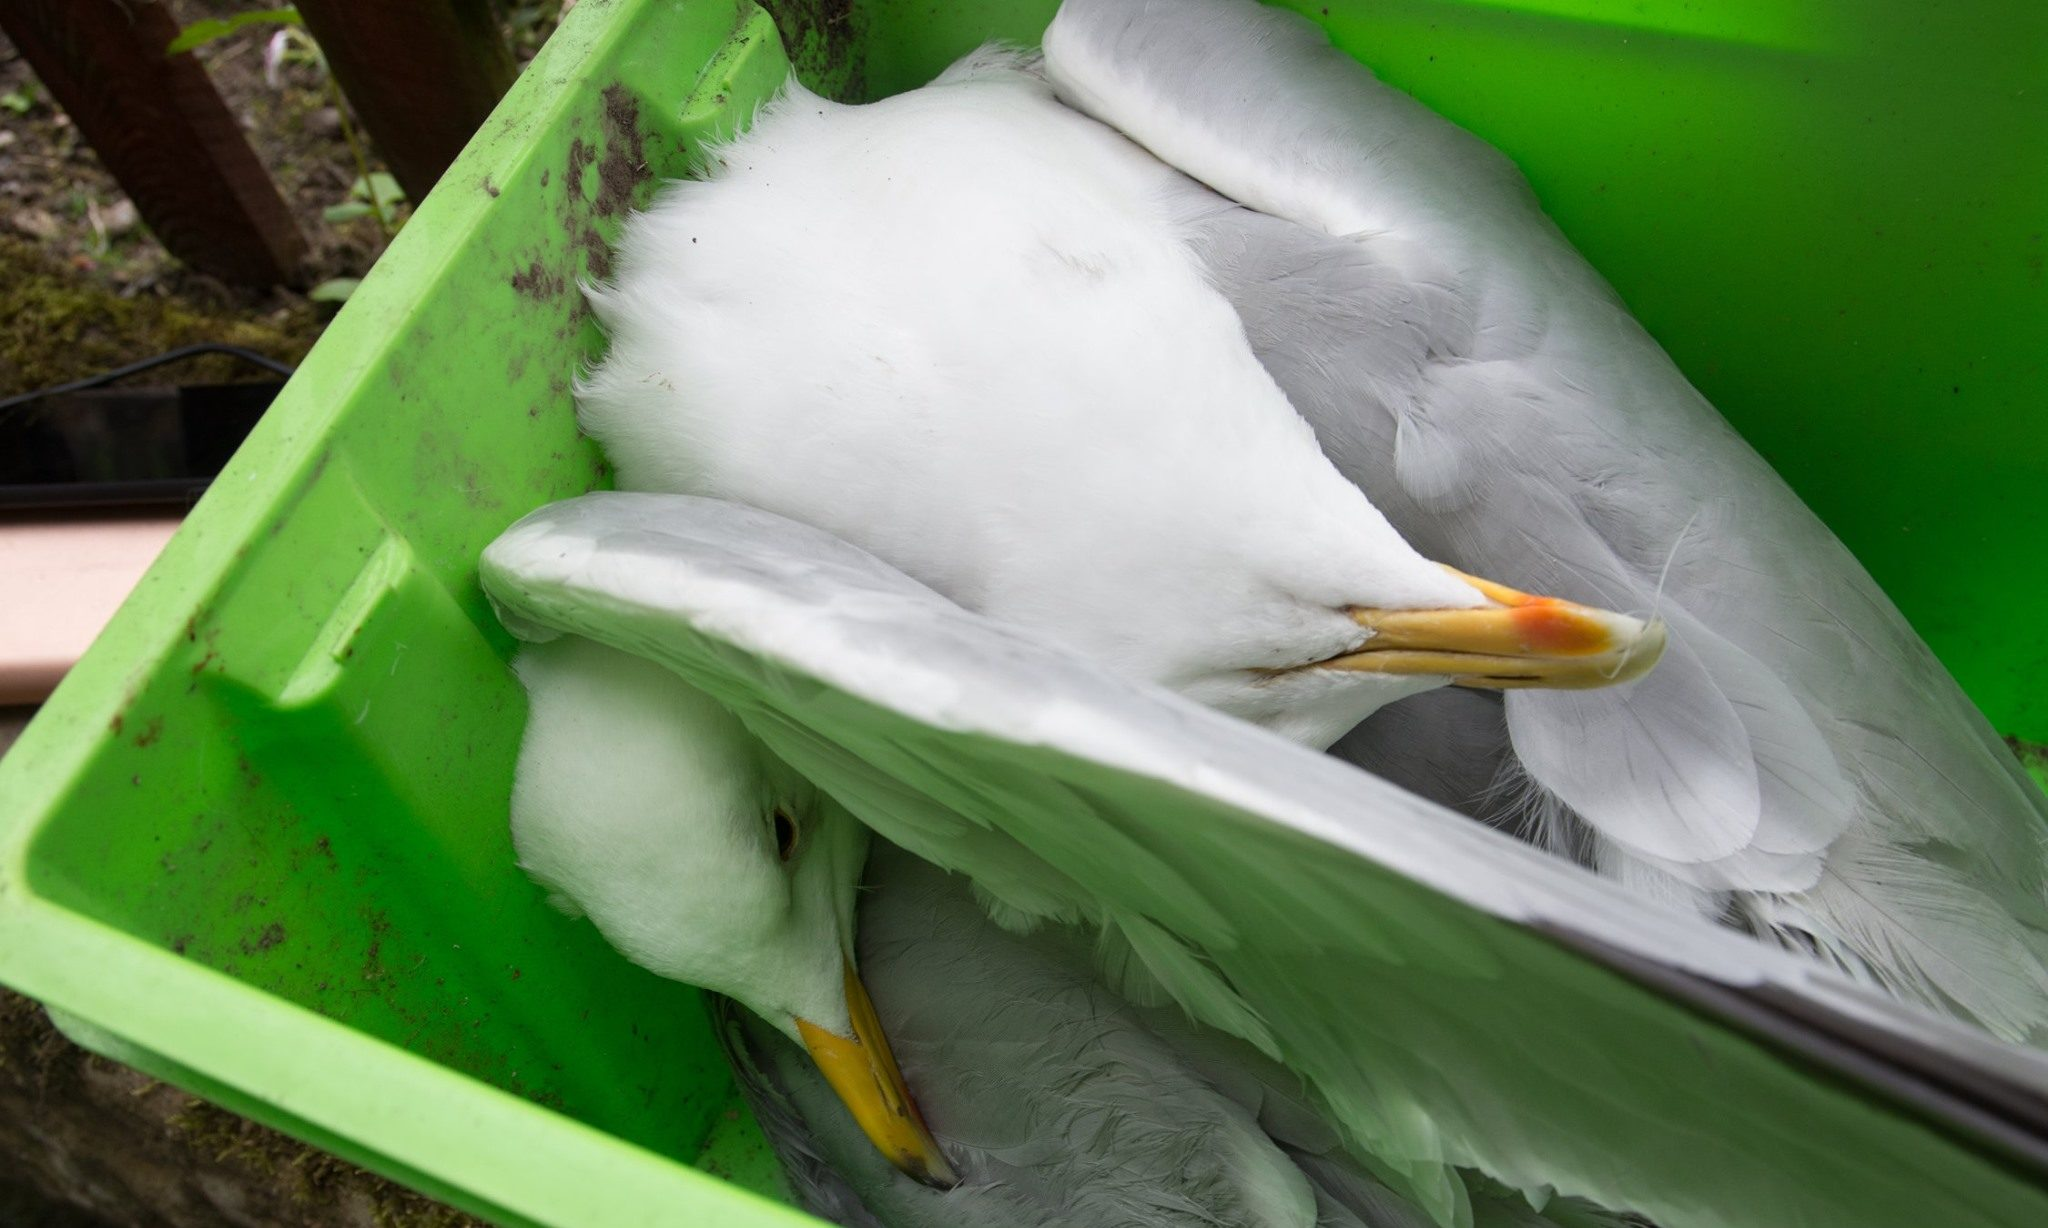 The two dead gulls